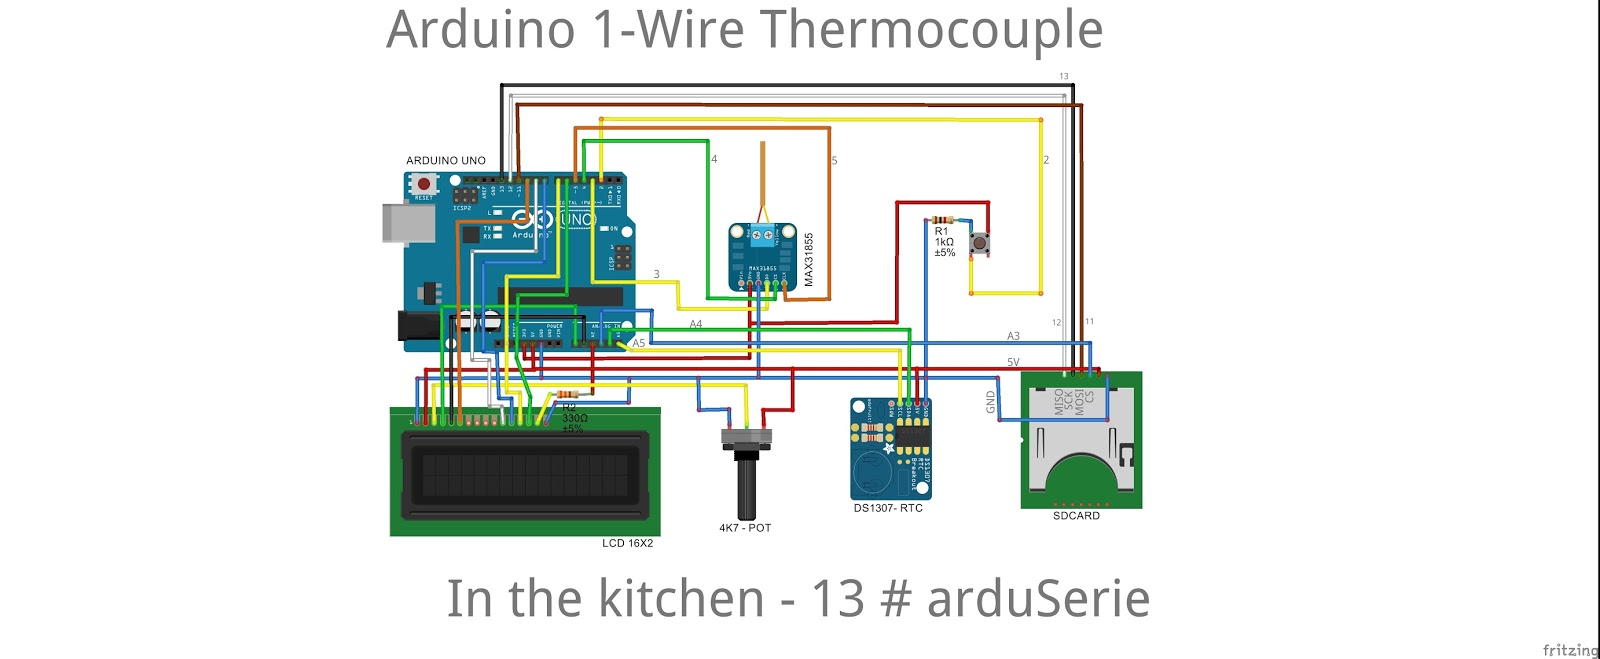 13 Arduserie Arduino 1 Wire Thermocouple In The Kitchen One Line Wiring Diagram Description This Code Disables Lcd And Sd Card To Test Rtc Serial Here Is Schematic Pinout Our Options